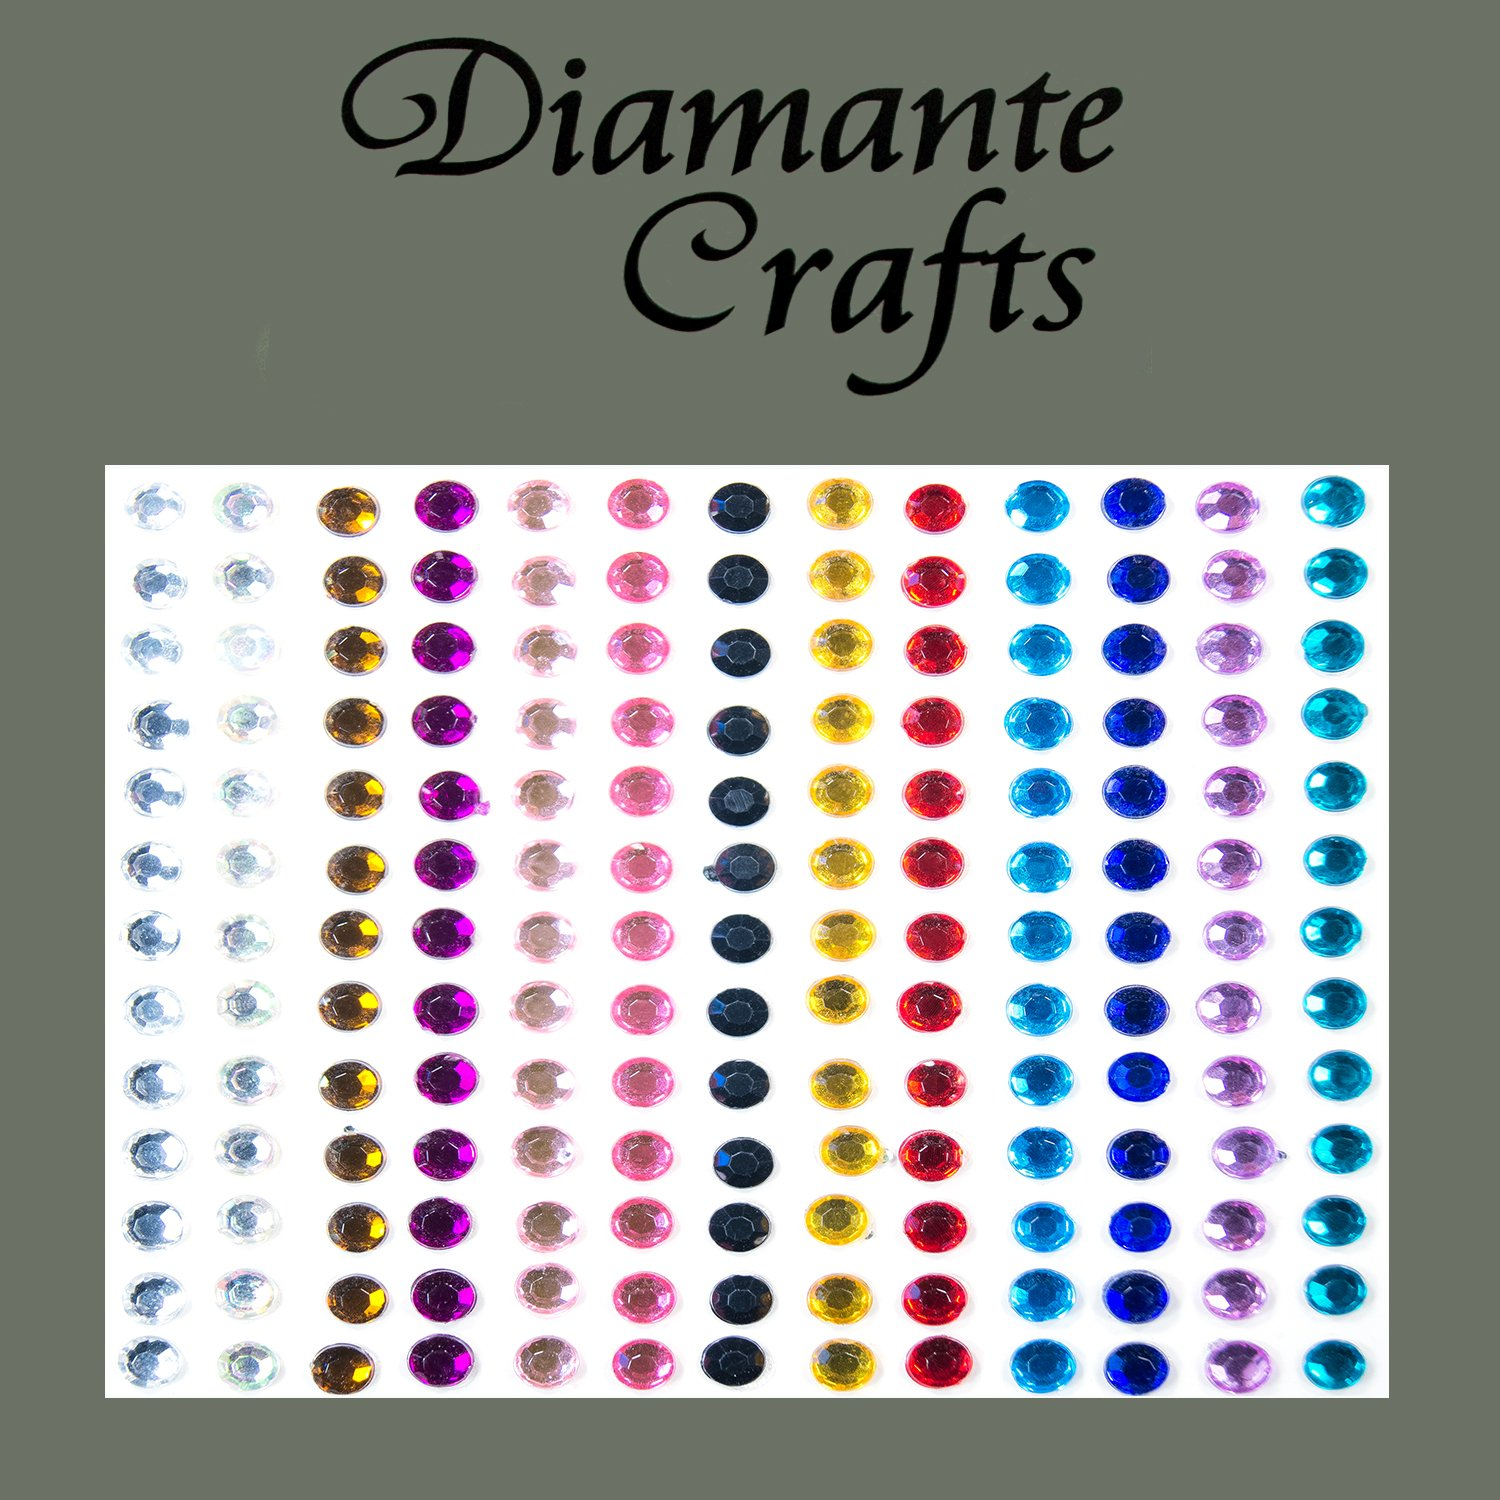 169 x 4mm Mixed Colour Diamante Self Adhesive Rhinestone Body Vajazzle Gems - created exclusively for Diamante Crafts